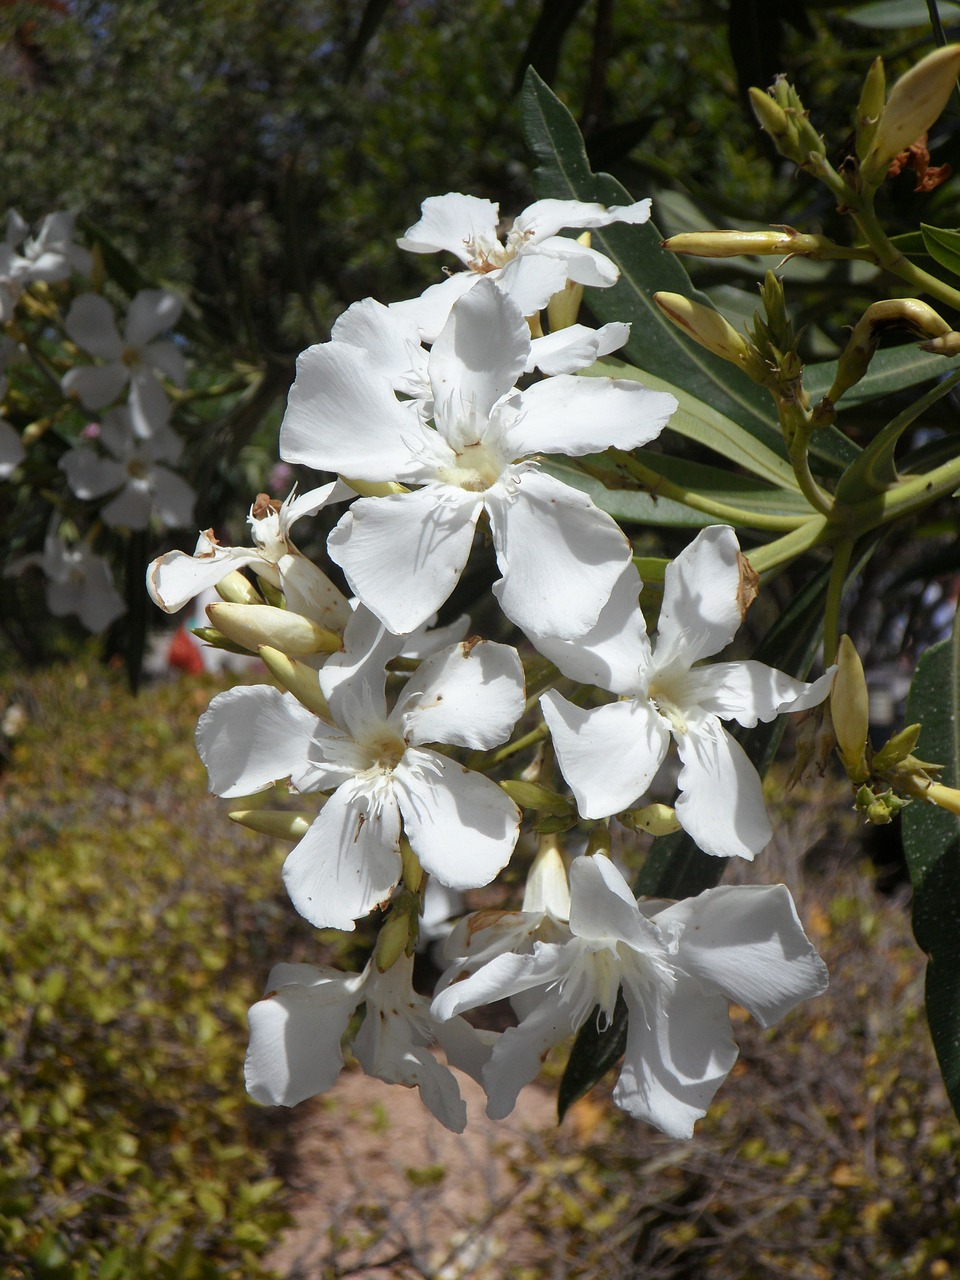 oleander white flower blossom free photo